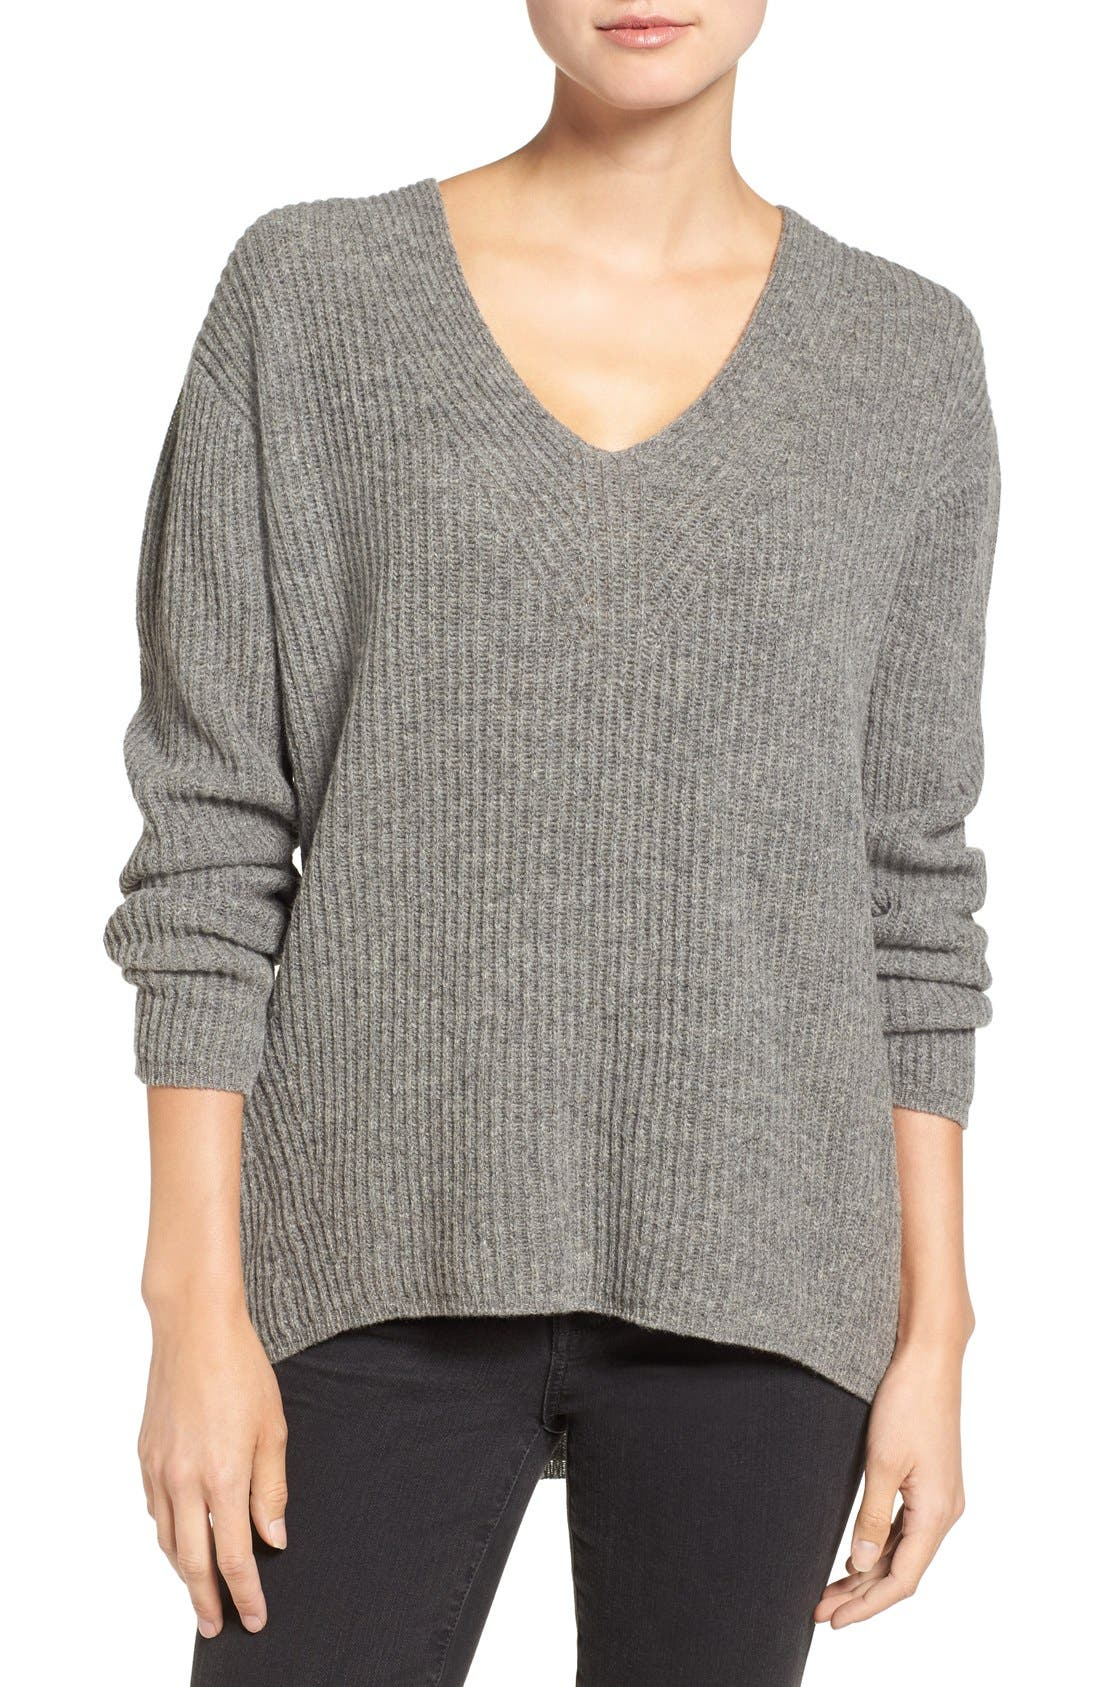 Woodside Pullover Sweater,                             Main thumbnail 5, color,